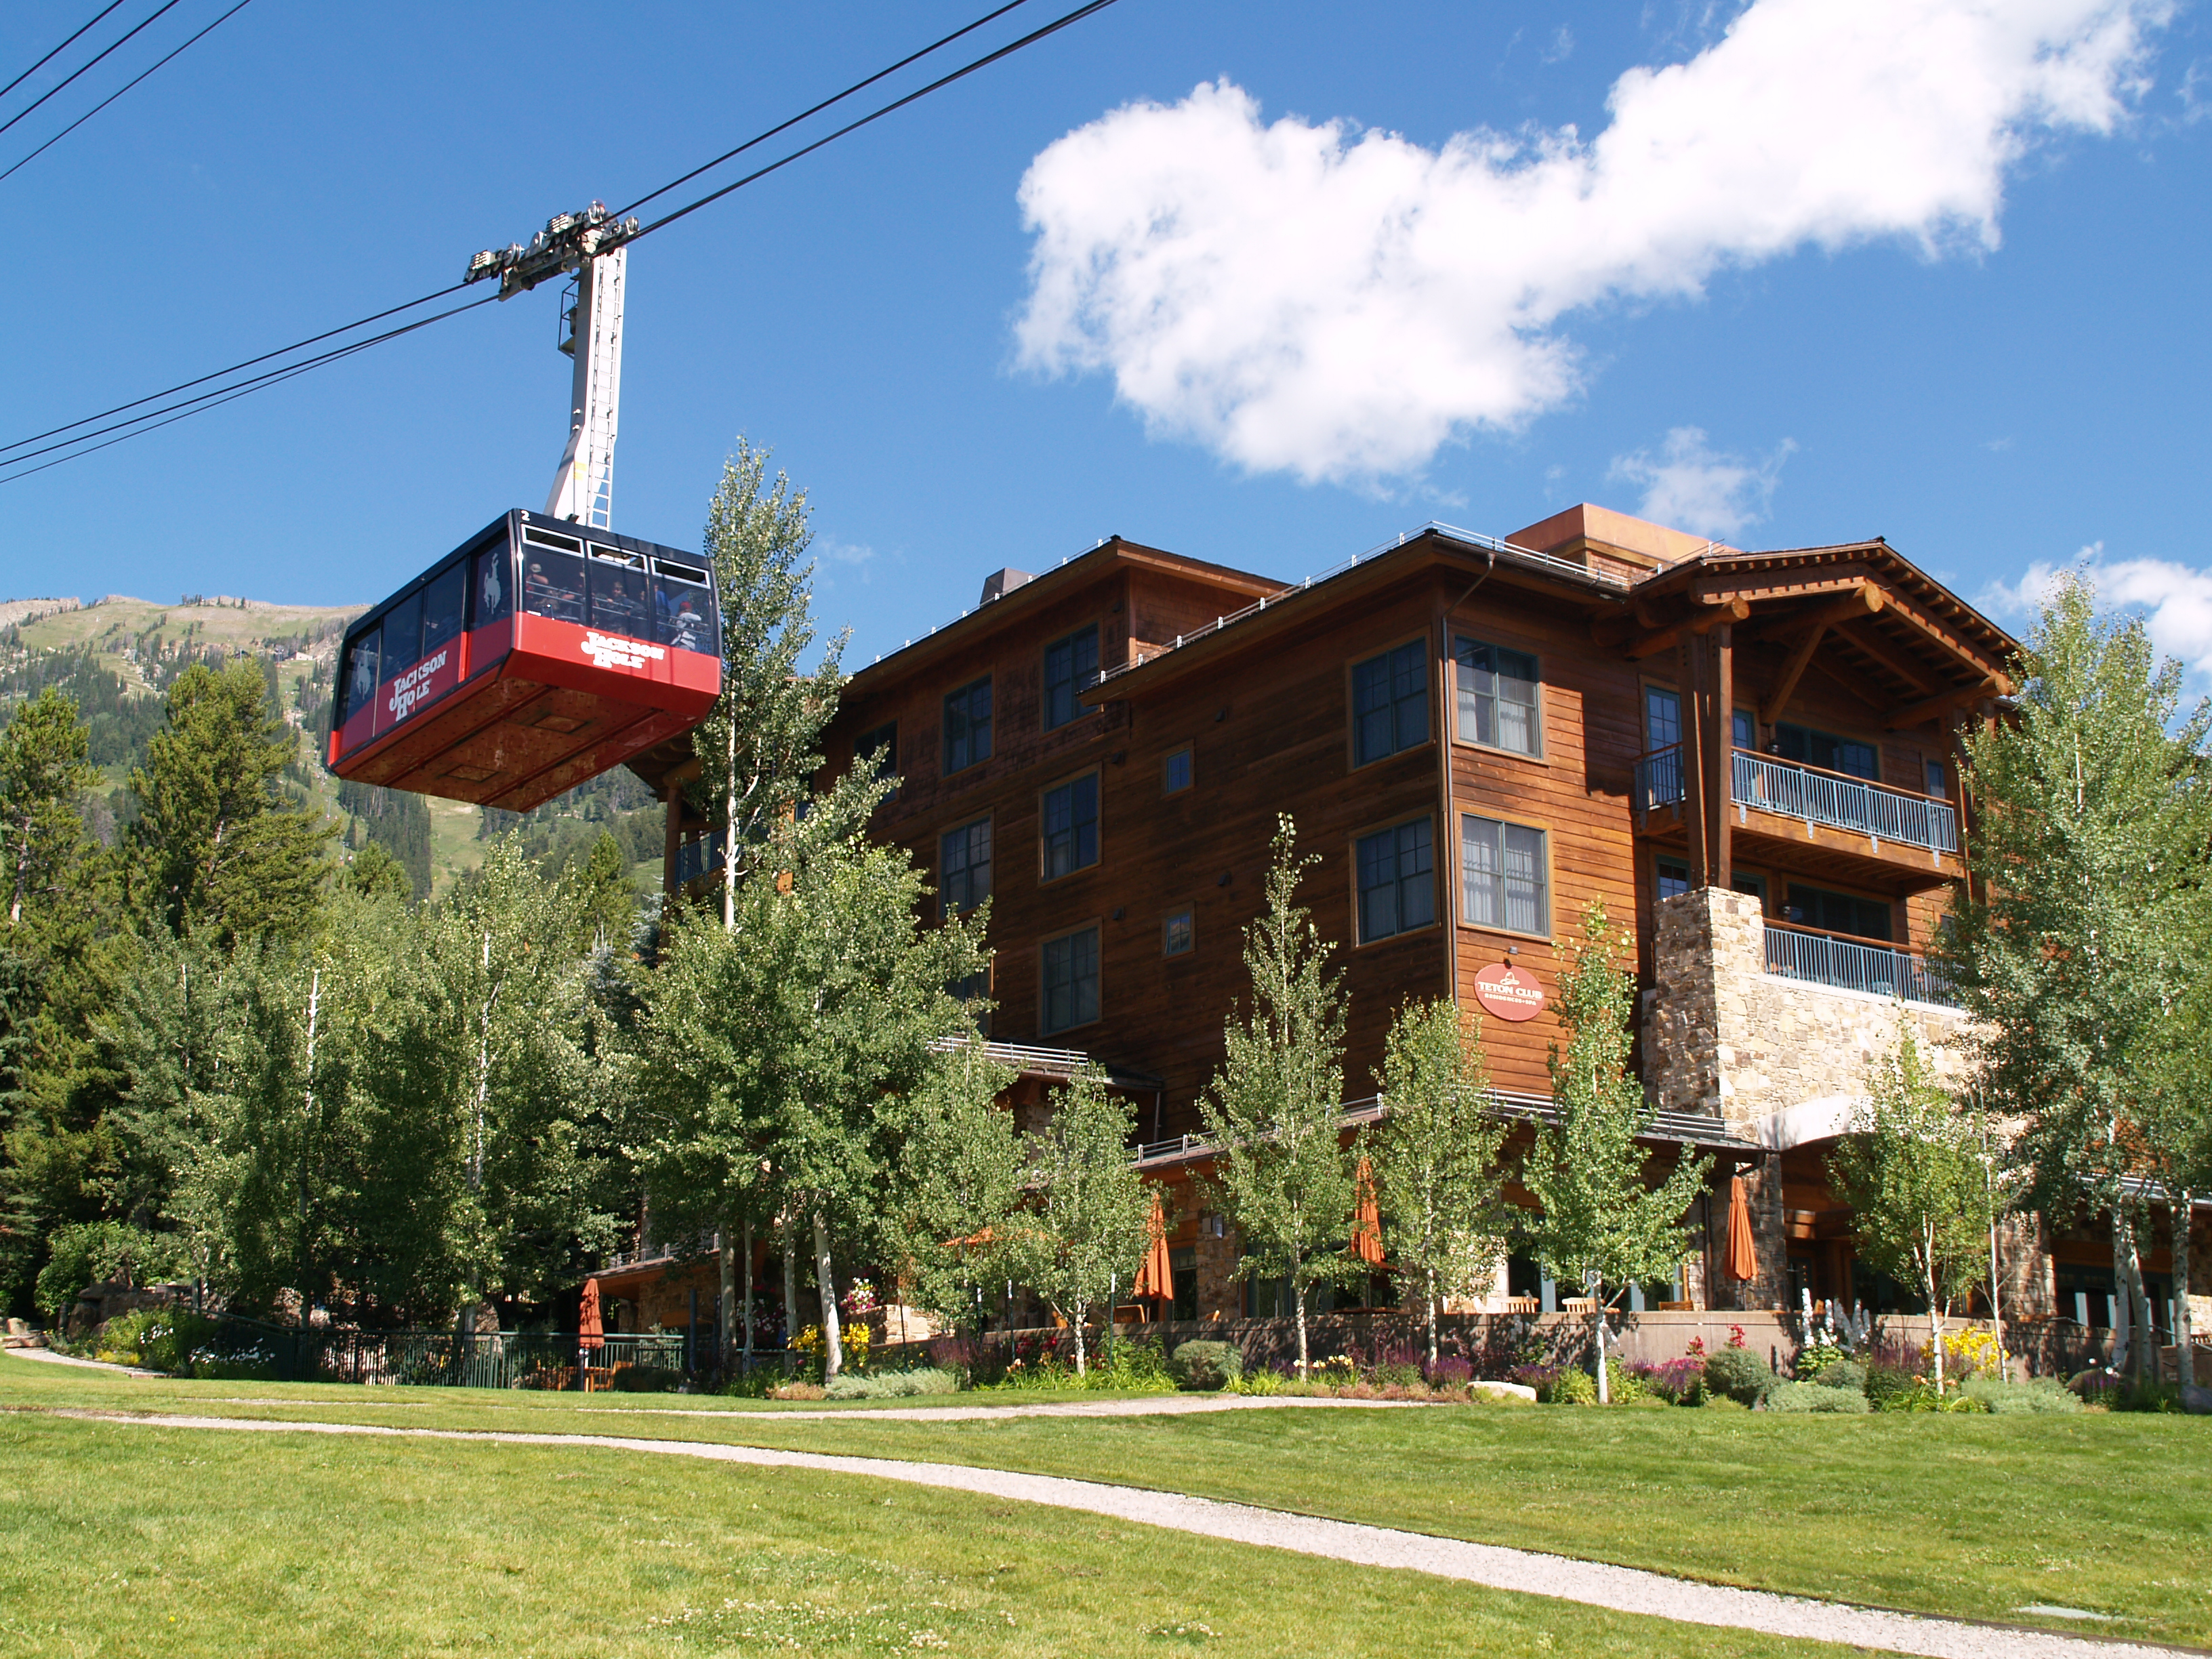 in Teton Village with the aerial tram